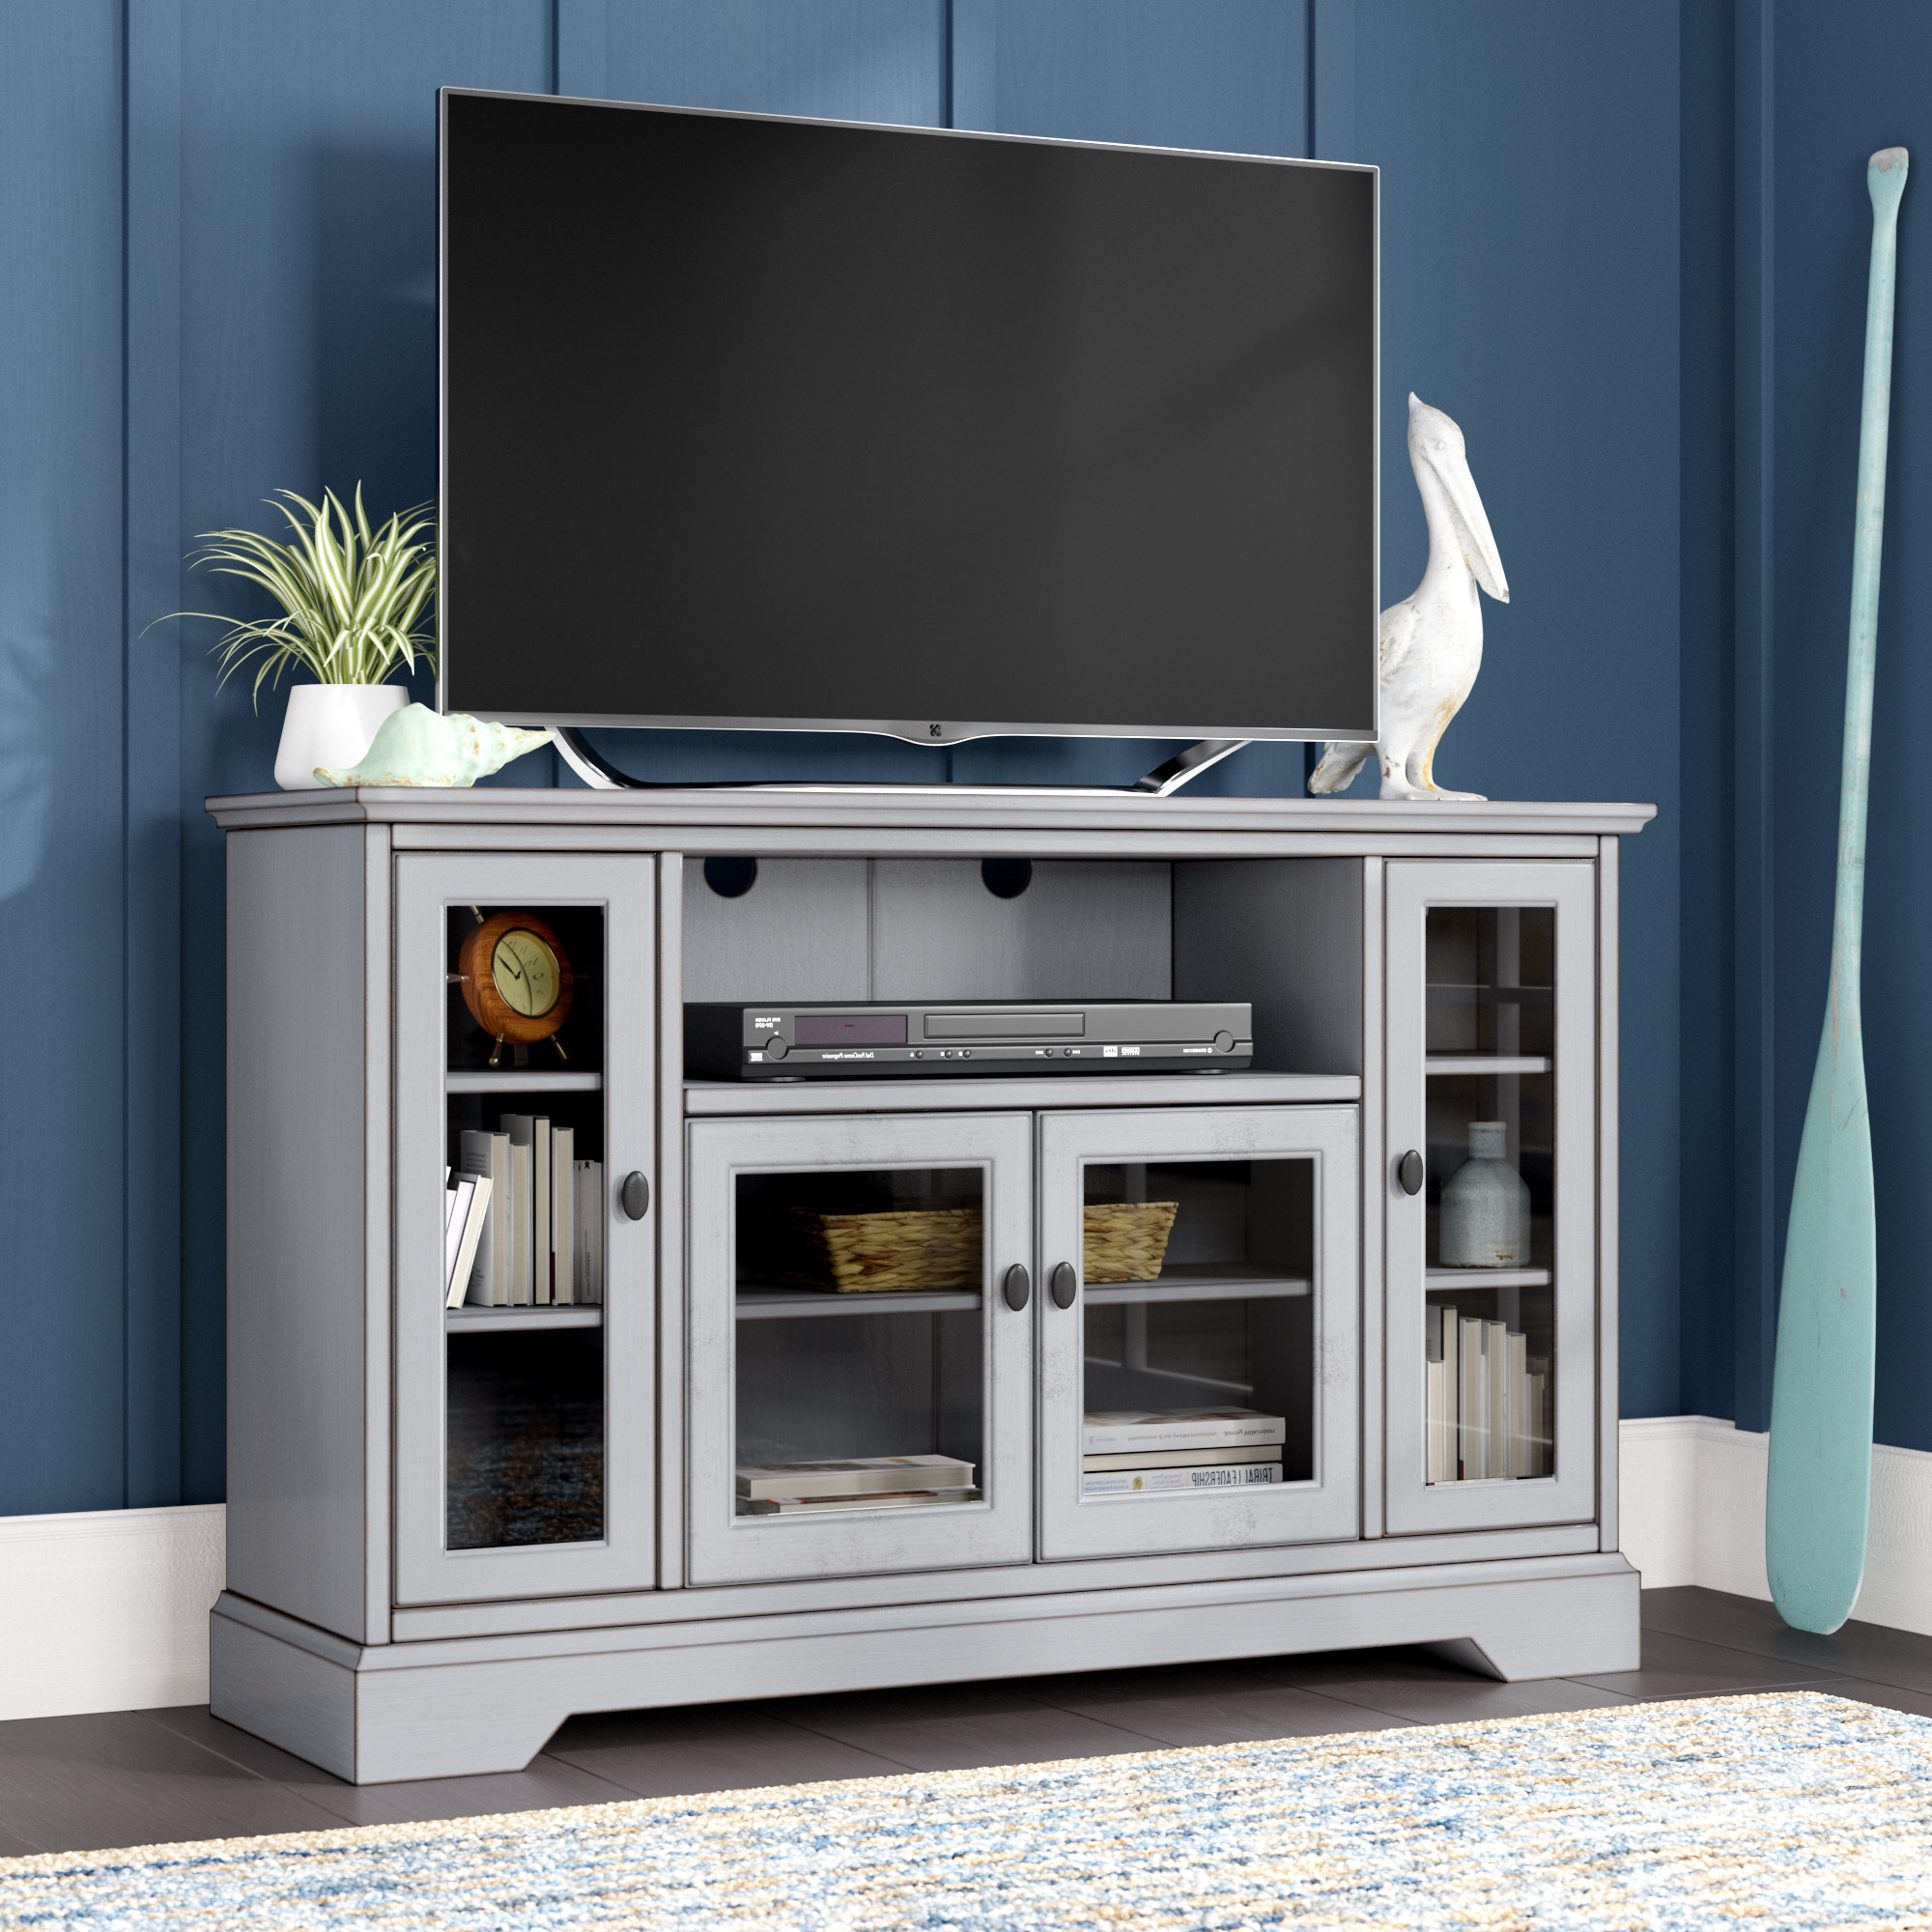 Tall Tv Stands You'll Love | Wayfair Throughout Edwin Black 64 Inch Tv Stands (View 7 of 20)